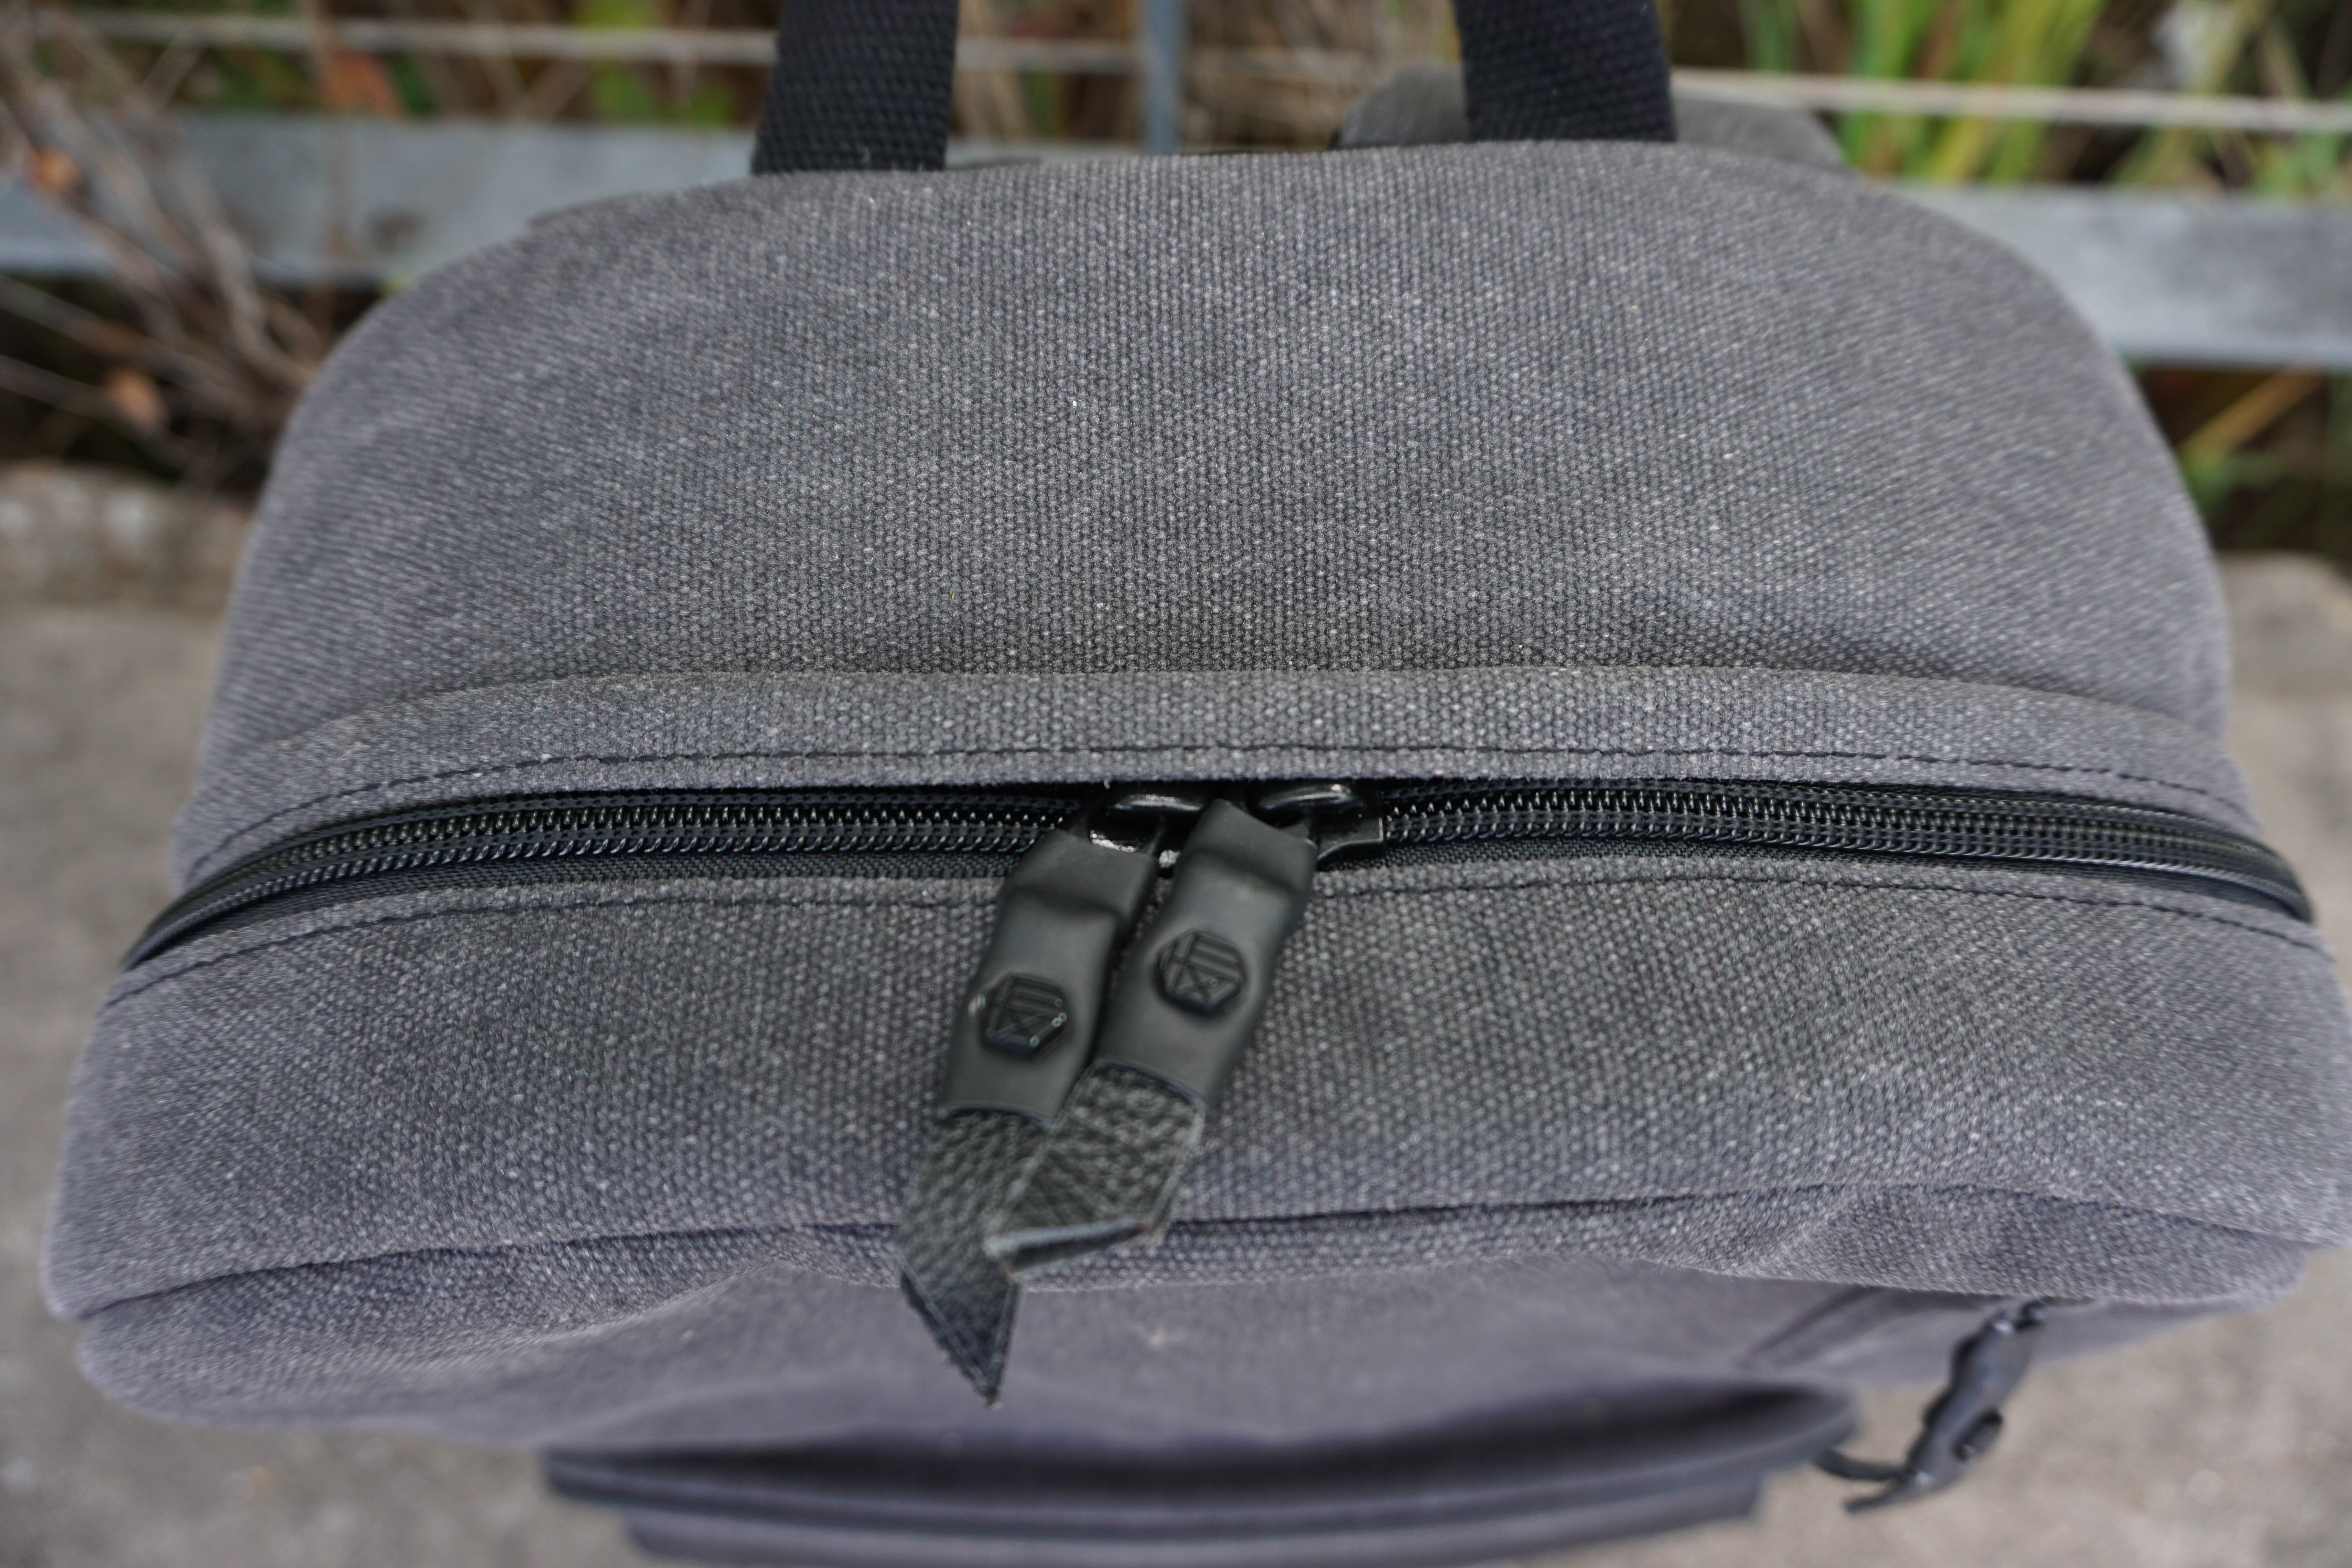 Hex brand supply signal backpack review canvas zippers zip pulls detail top view